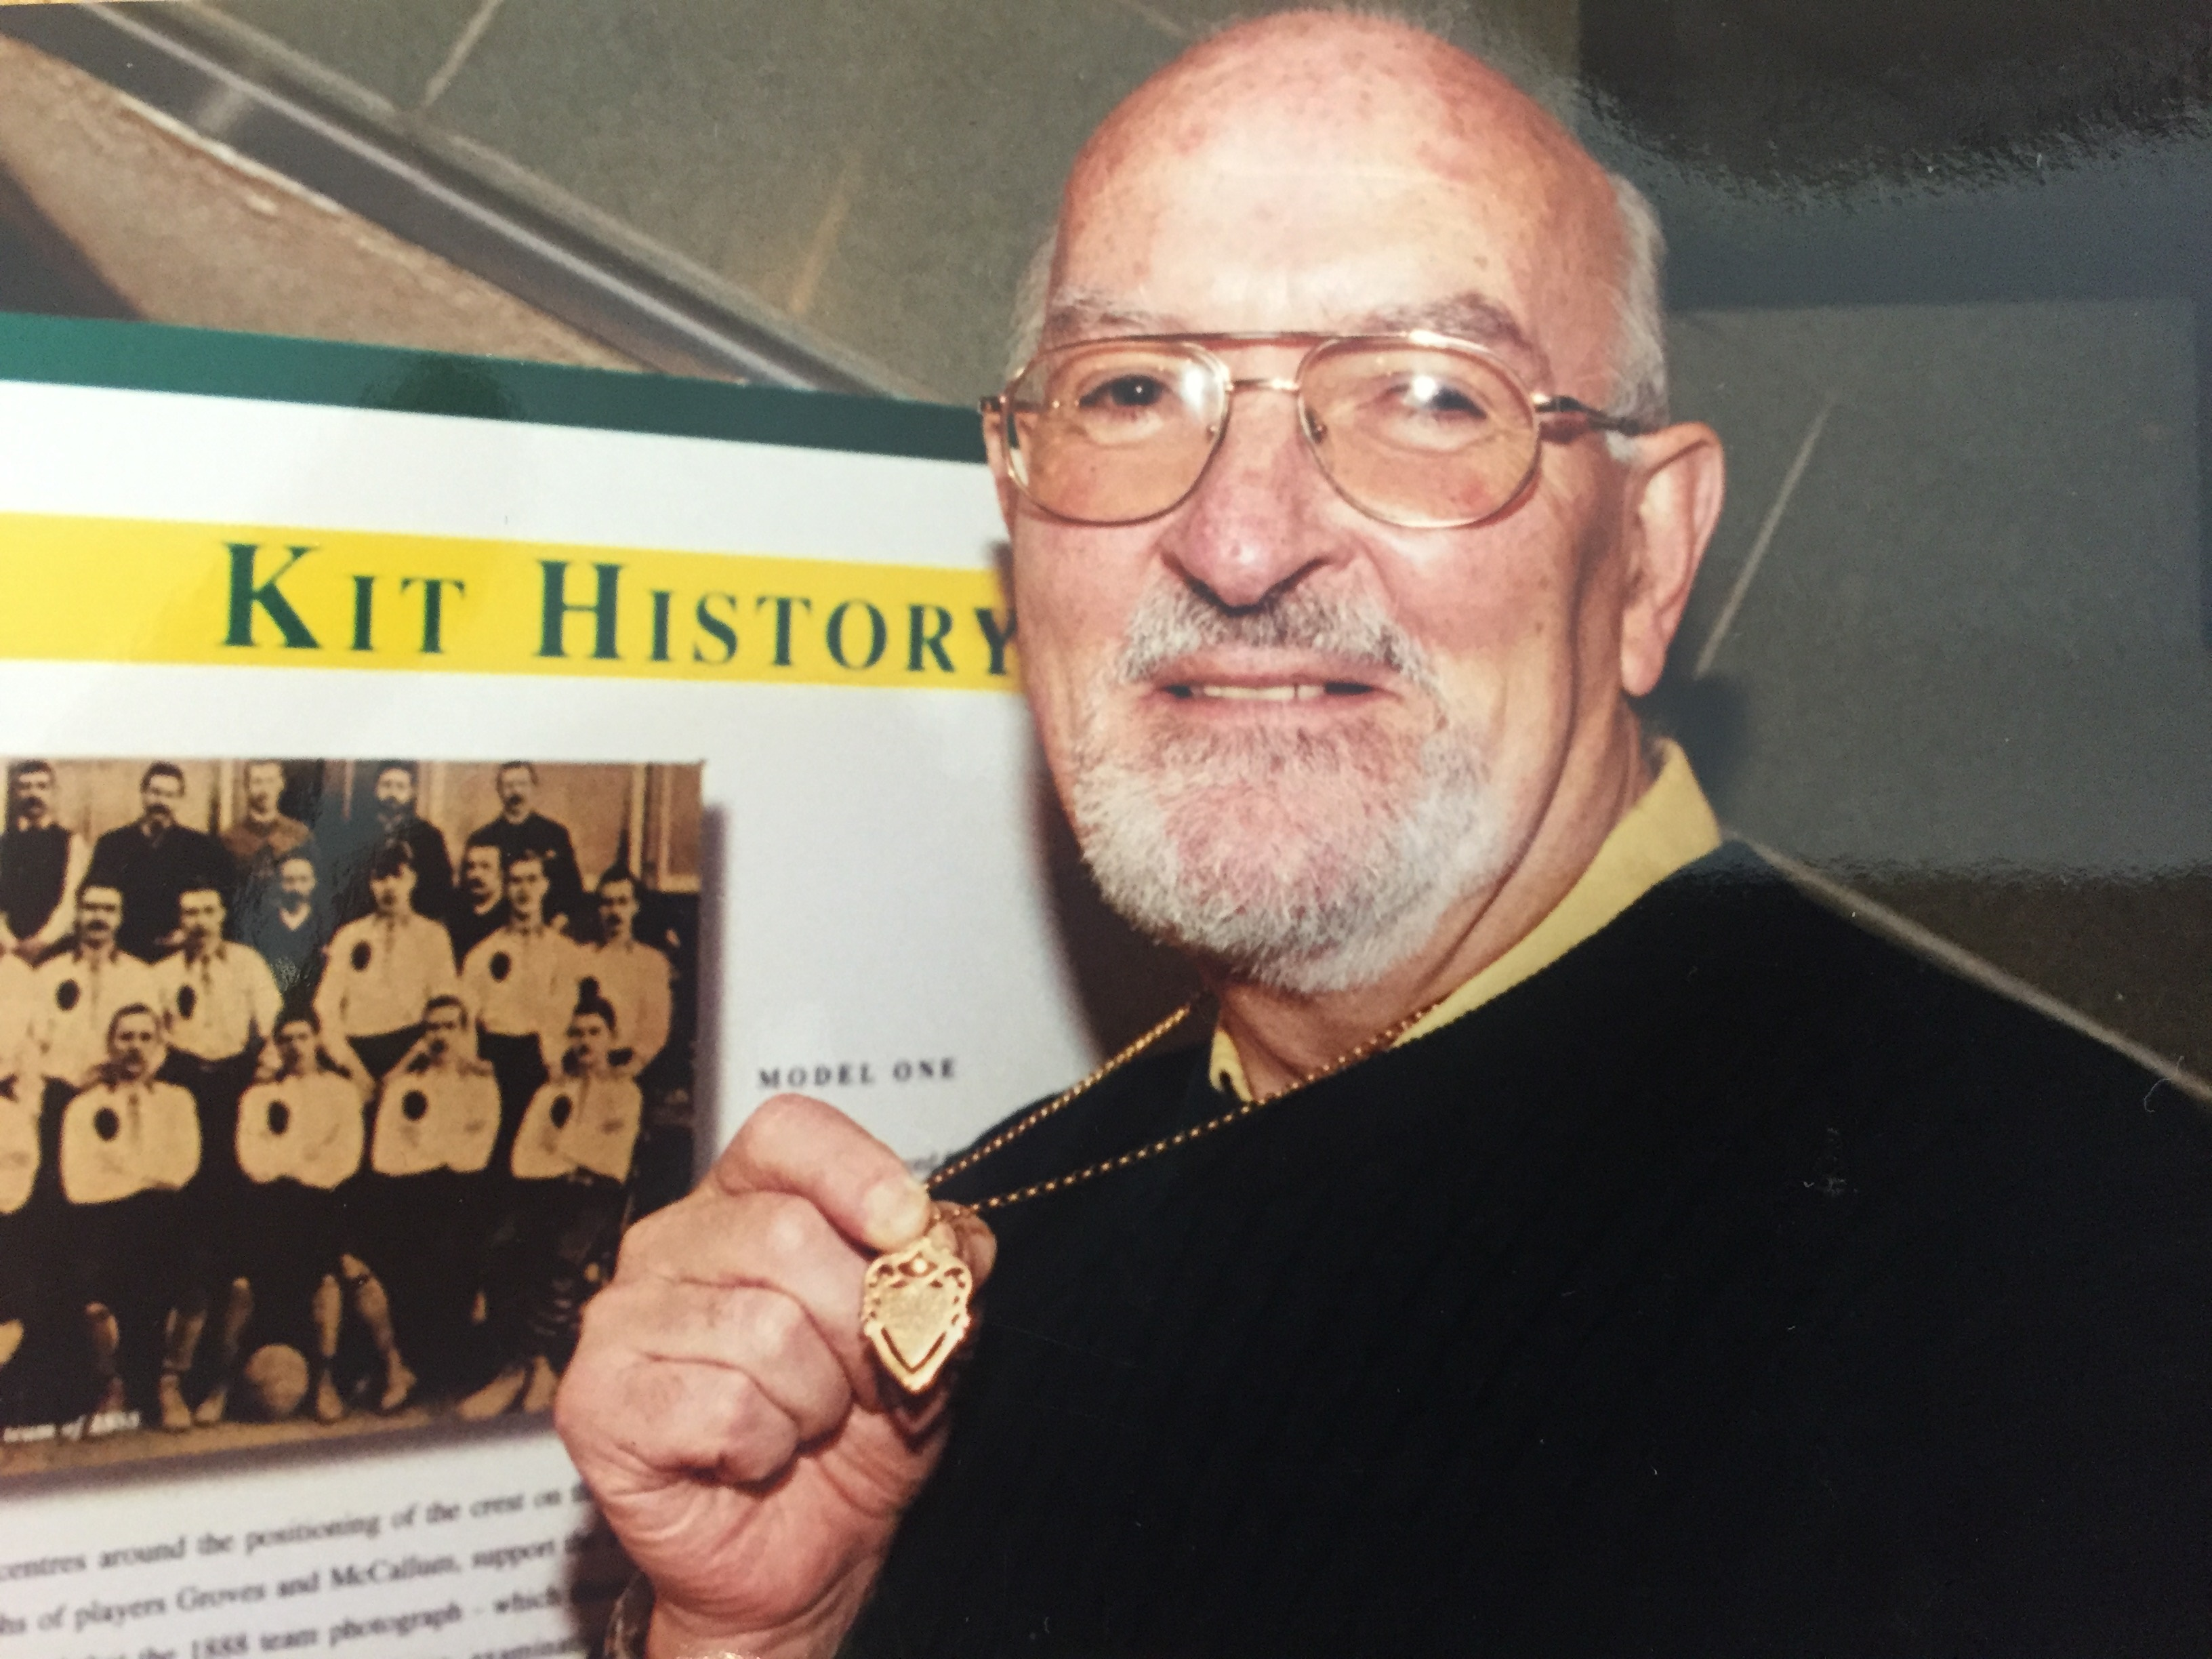 Bill McLaughlin with the medal his grandfather, James McLaughlin, won in Celtic's first ever cup win in season 1888-89